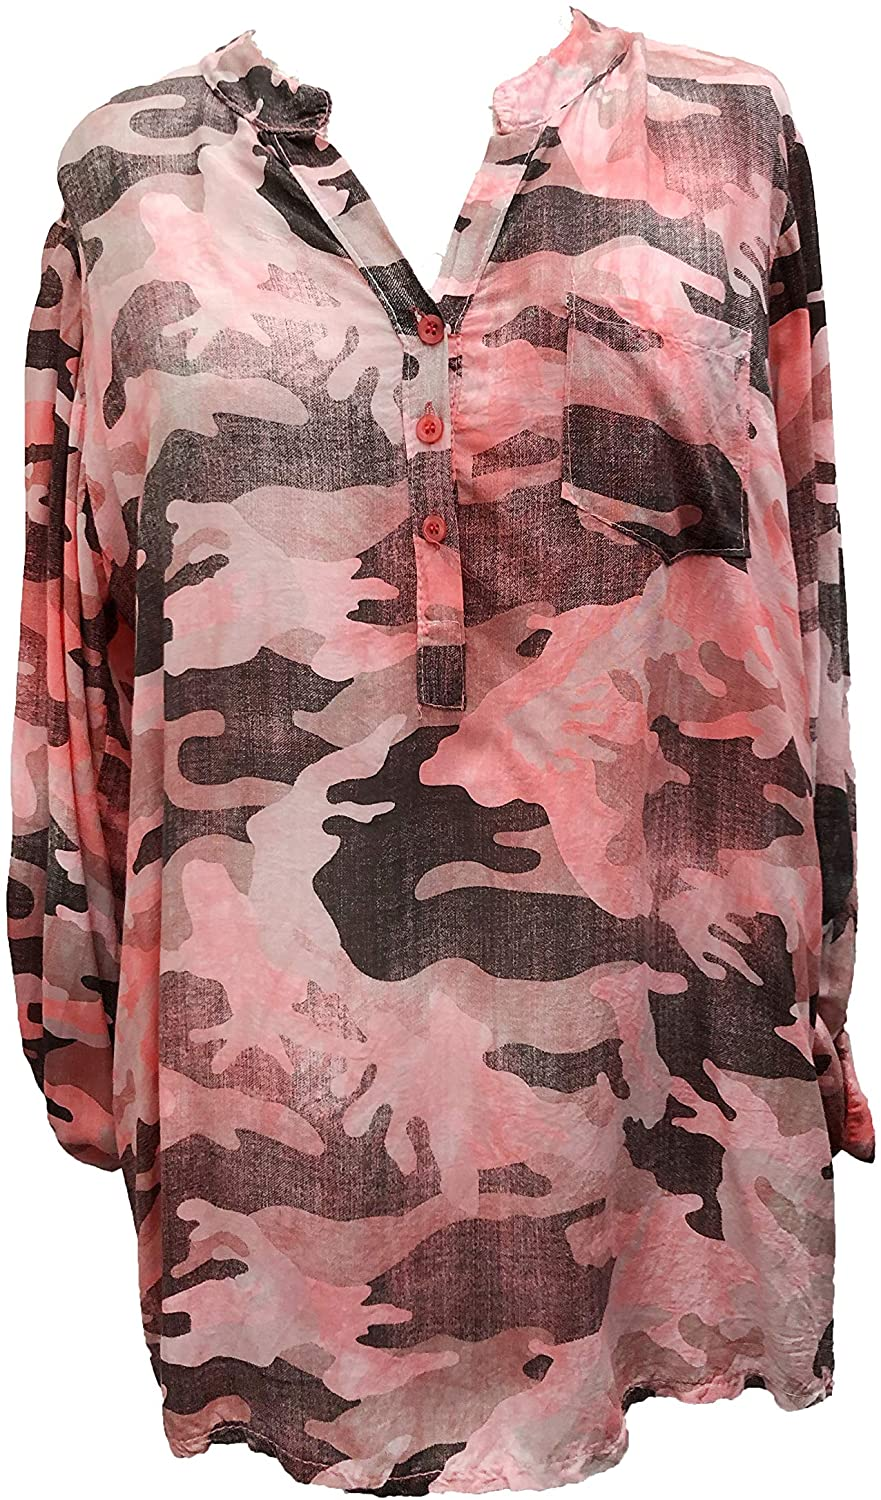 Pamper Yourself Now ltd Beautiful Bright Pink Camouflage Collarless Ladies Shirt with 3 Quarter Length Sleeve Made in Italy (AA88)